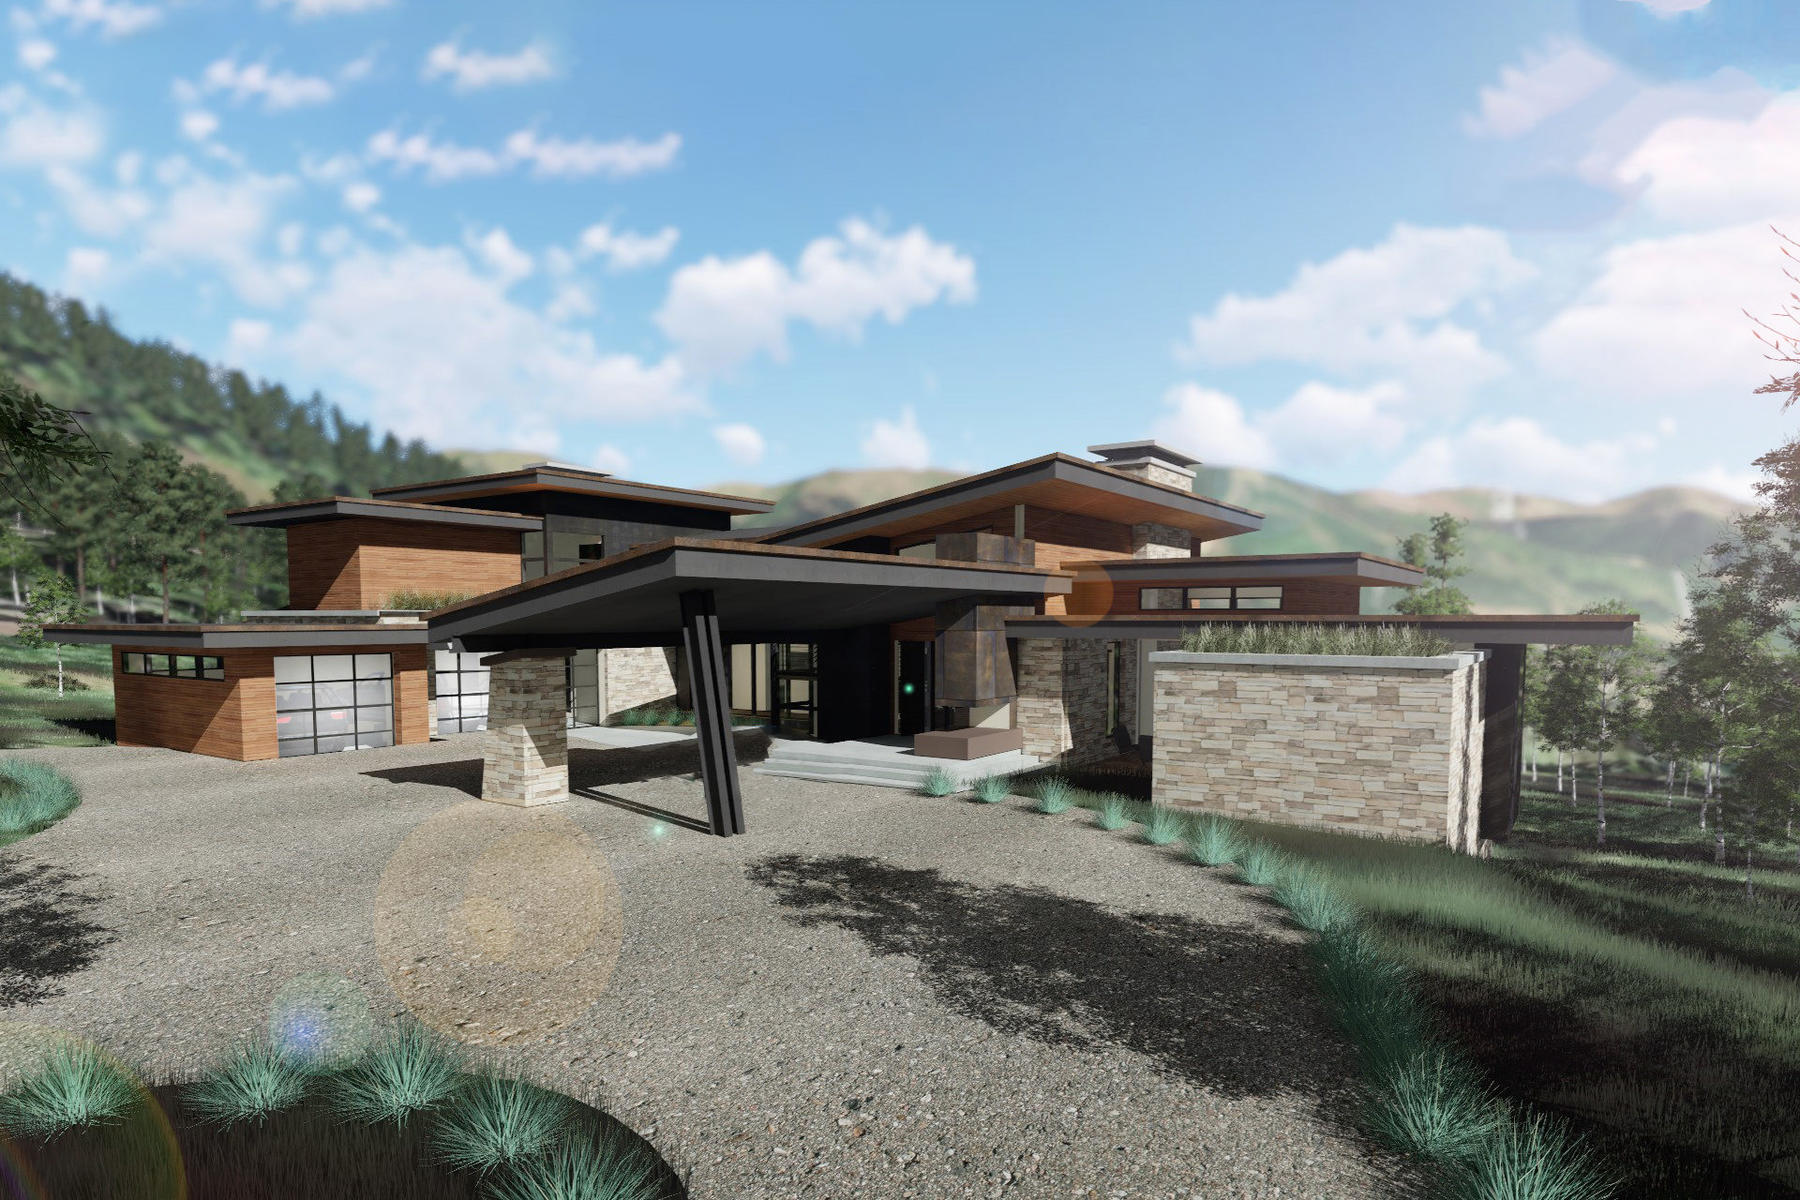 Single Family Homes for Active at New Construction In The Colony 251 White Pine Canyon Rd Park City, Utah 84060 United States